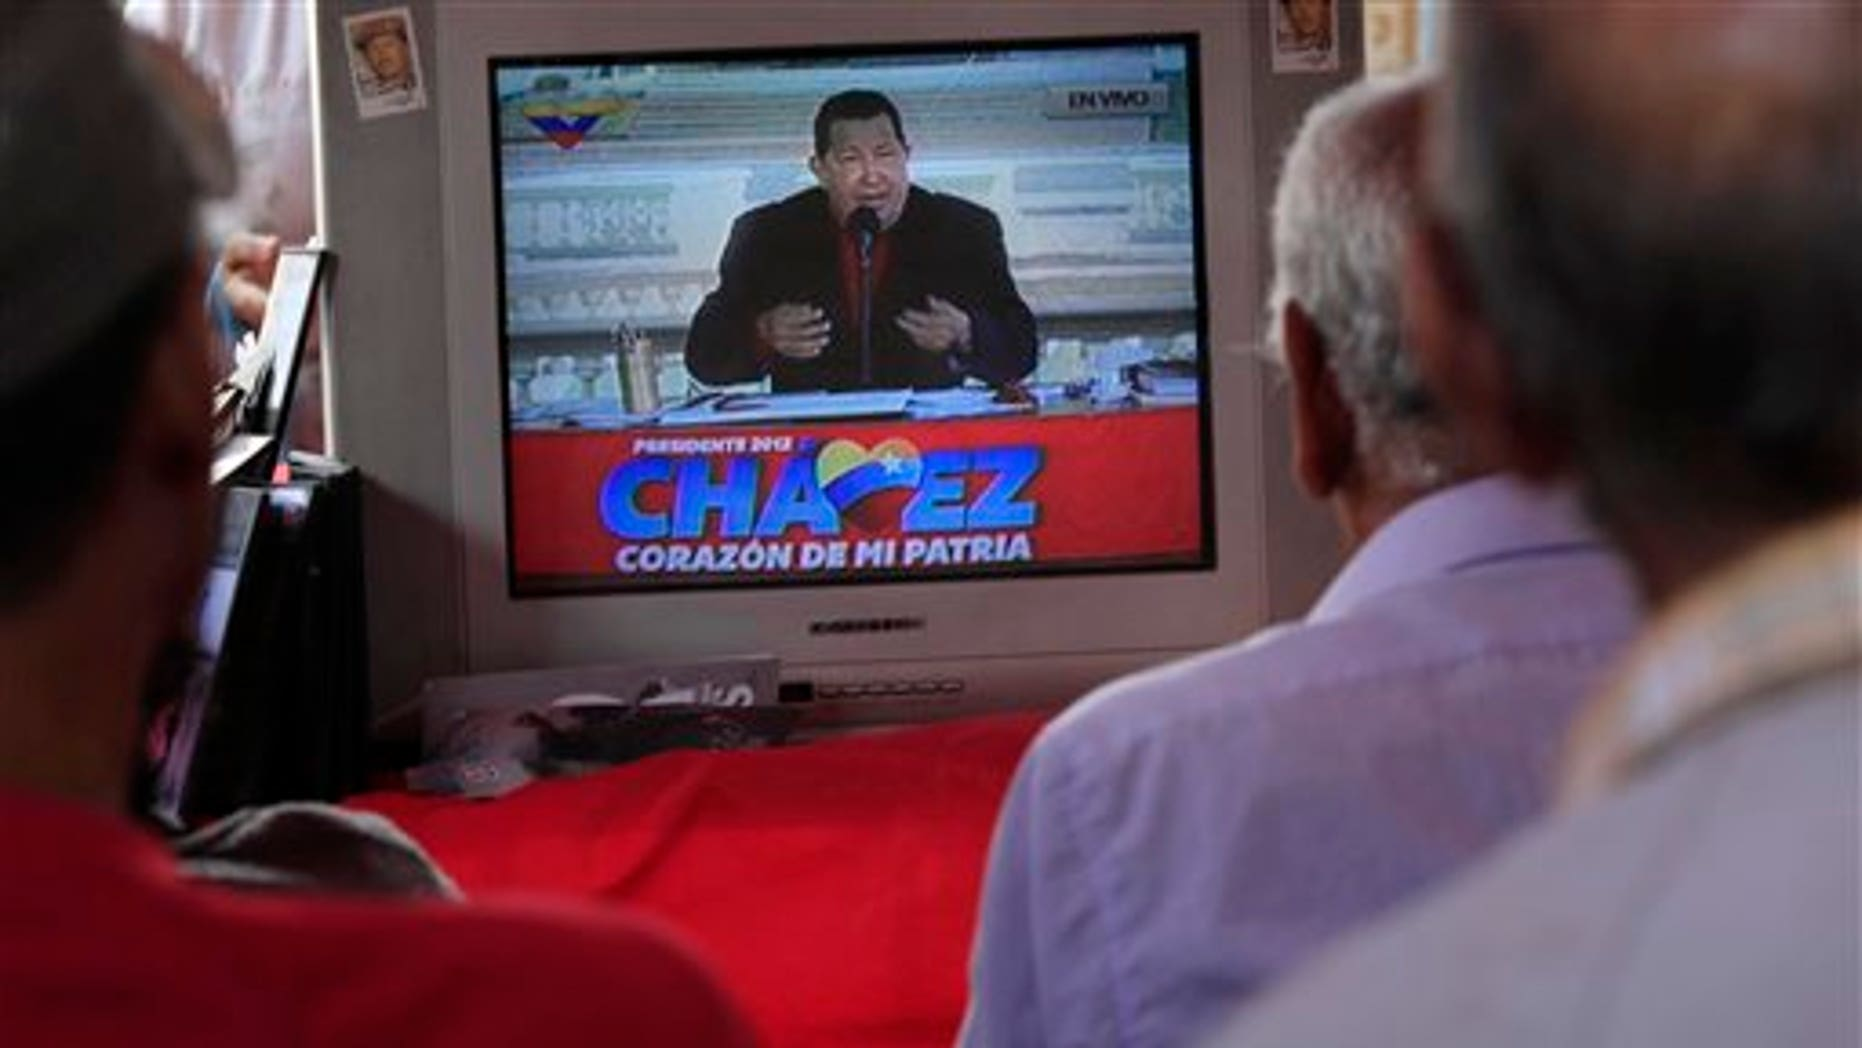 ADVANCE FOR USE SUNDAY, SEPT. 23, 2012 AND THEREAFTER - In this Sept. 5, 2012 photo, people watch a TV in Caracas, Venezuela broadcasting President Hugo Chavez delivering a speech as presidential candidate. Nearly 14 years after President Hugo Chavez took office, and despite the biggest oil bonanza in Venezuela's history, there's little outward sign of the nearly one trillion petrodollars that have flowed into the country. The populist president has used the oil wealth to buttress his support through cash handouts, state-run grocery stores and a gamut of other social programs. With more money in the economy, incomes are higher and the number of people living in poverty has fallen. Yet some experts say Chavez could have done much more to improve the country's infrastructure, boost its economy and invest in the very oil industry that keeps Venezuela afloat. (AP Photo/Ariana Cubillos)